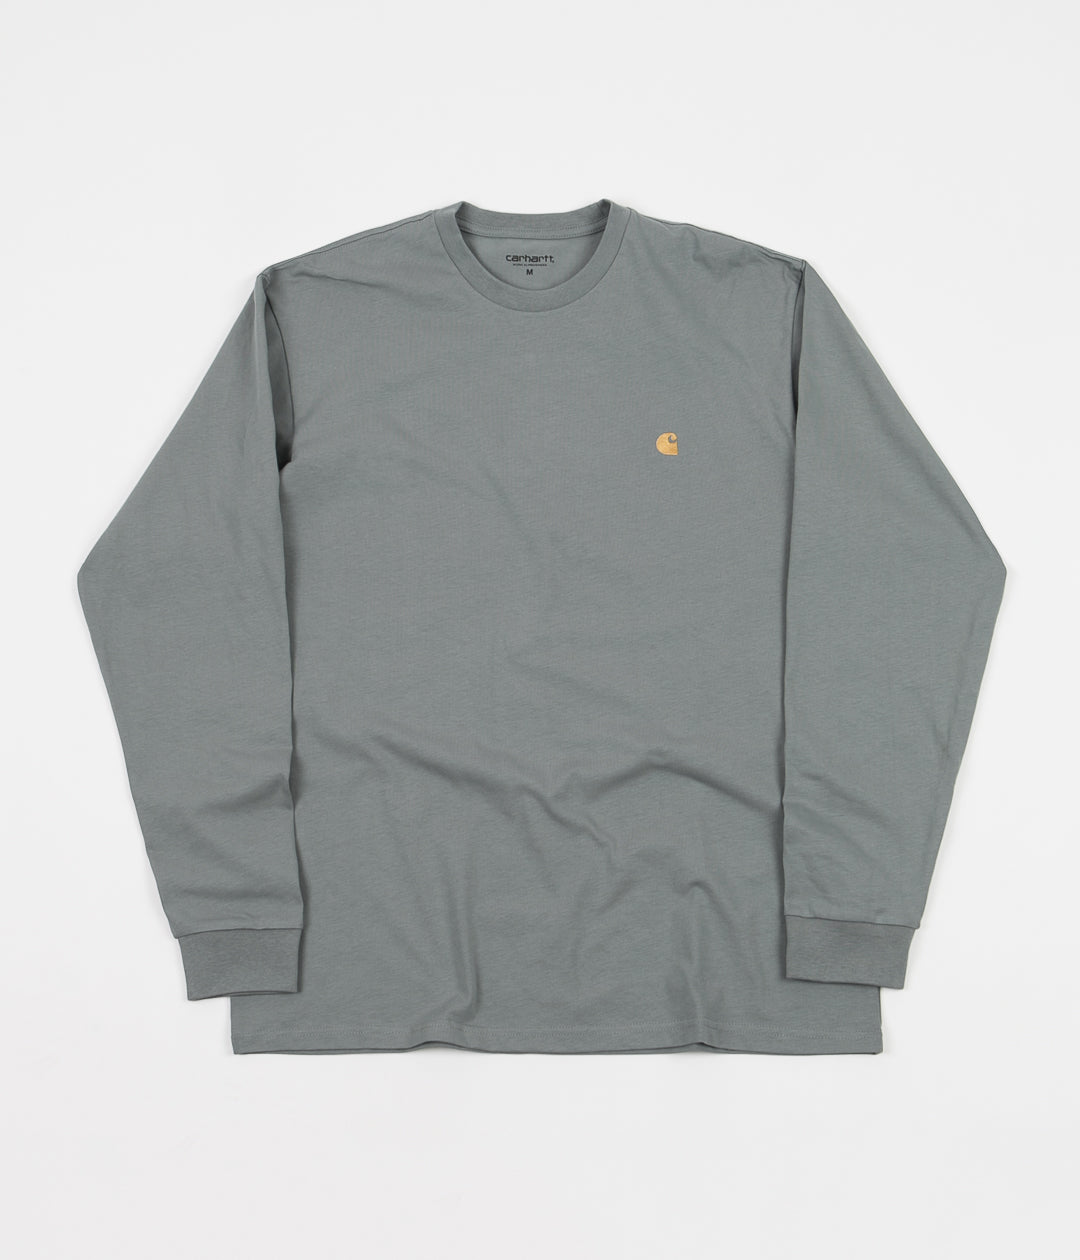 Carhartt Chase Long Sleeve T-Shirt - Cloudy / Gold